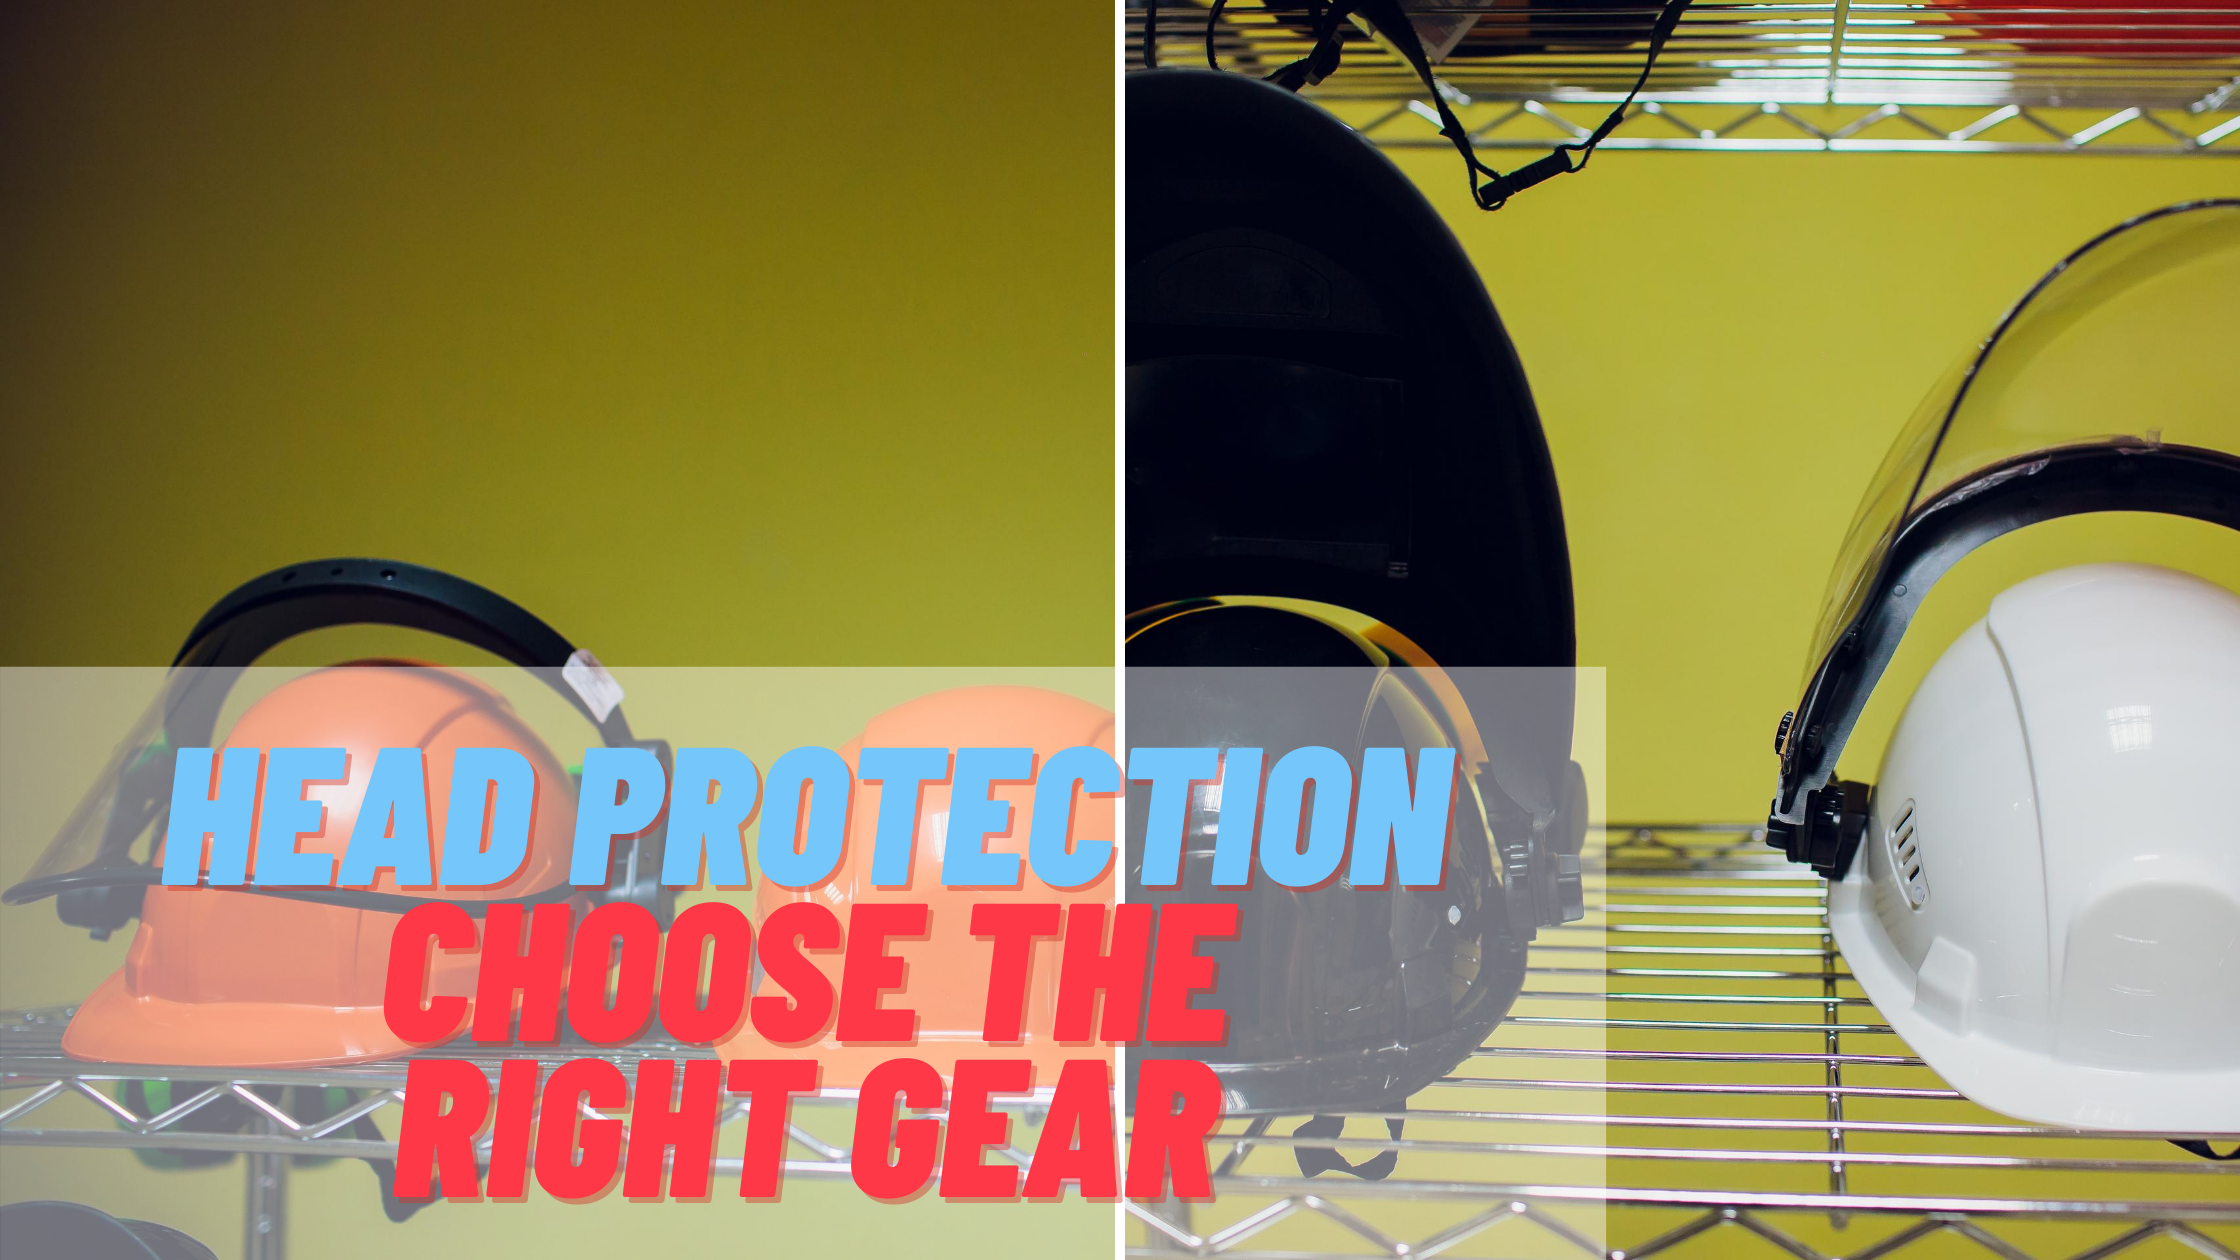 Head Protection - How To Choose The Right Gear for the Job Site